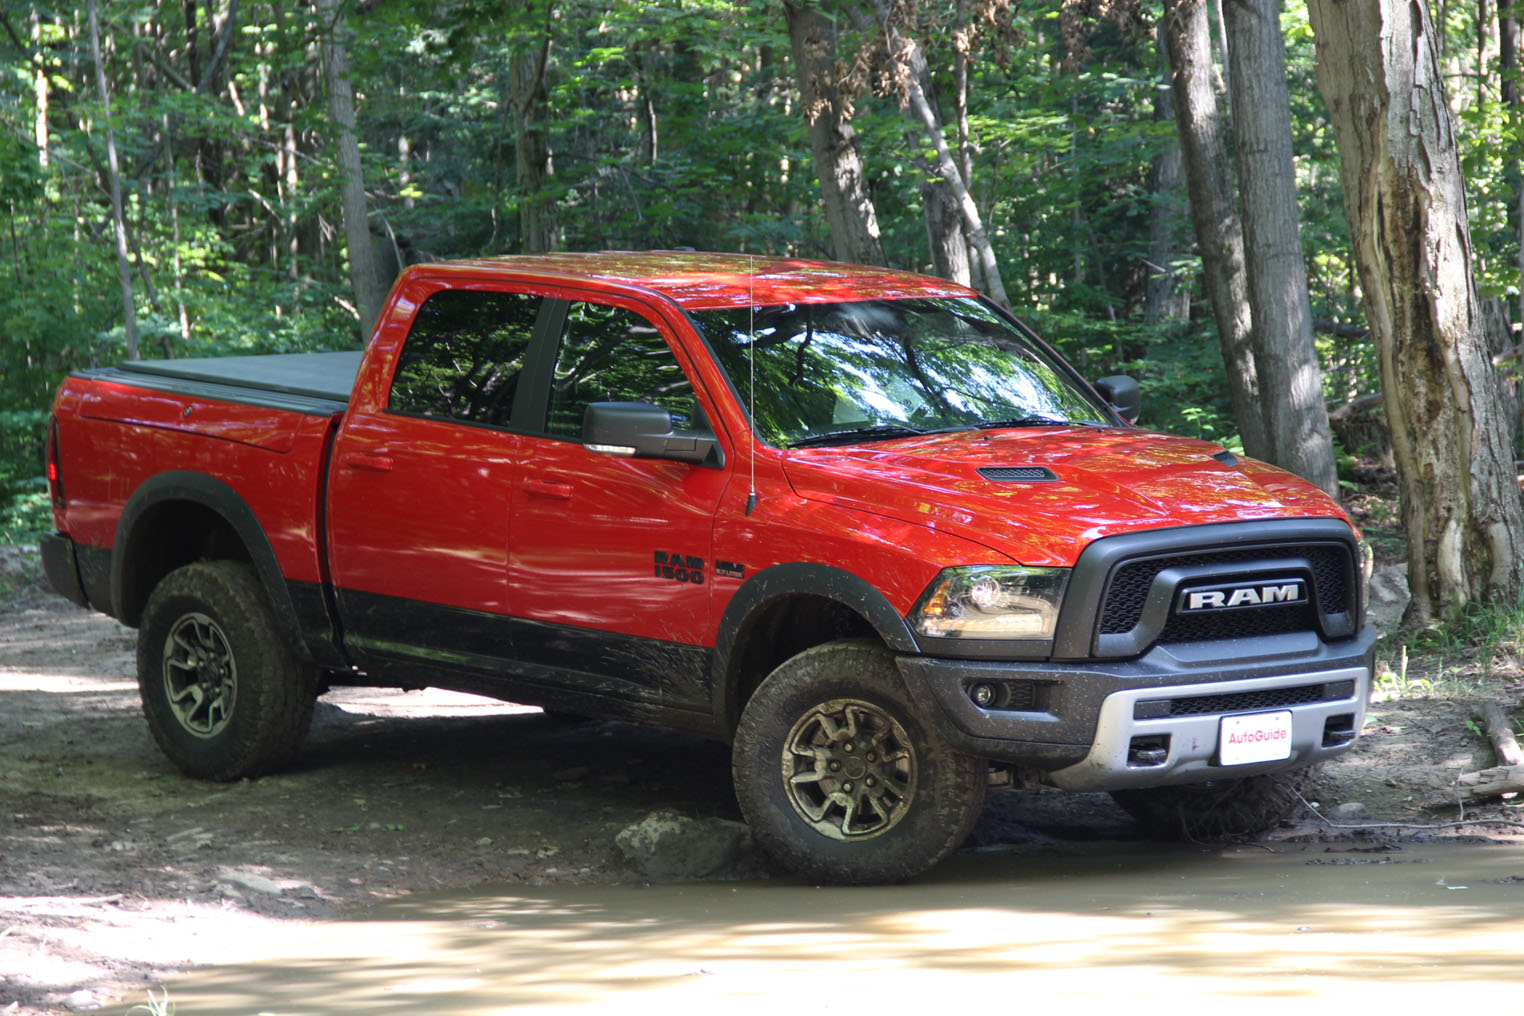 2018 Dodge Rebel >> 2015 Ram 1500 Rebel Review - AutoGuide.com